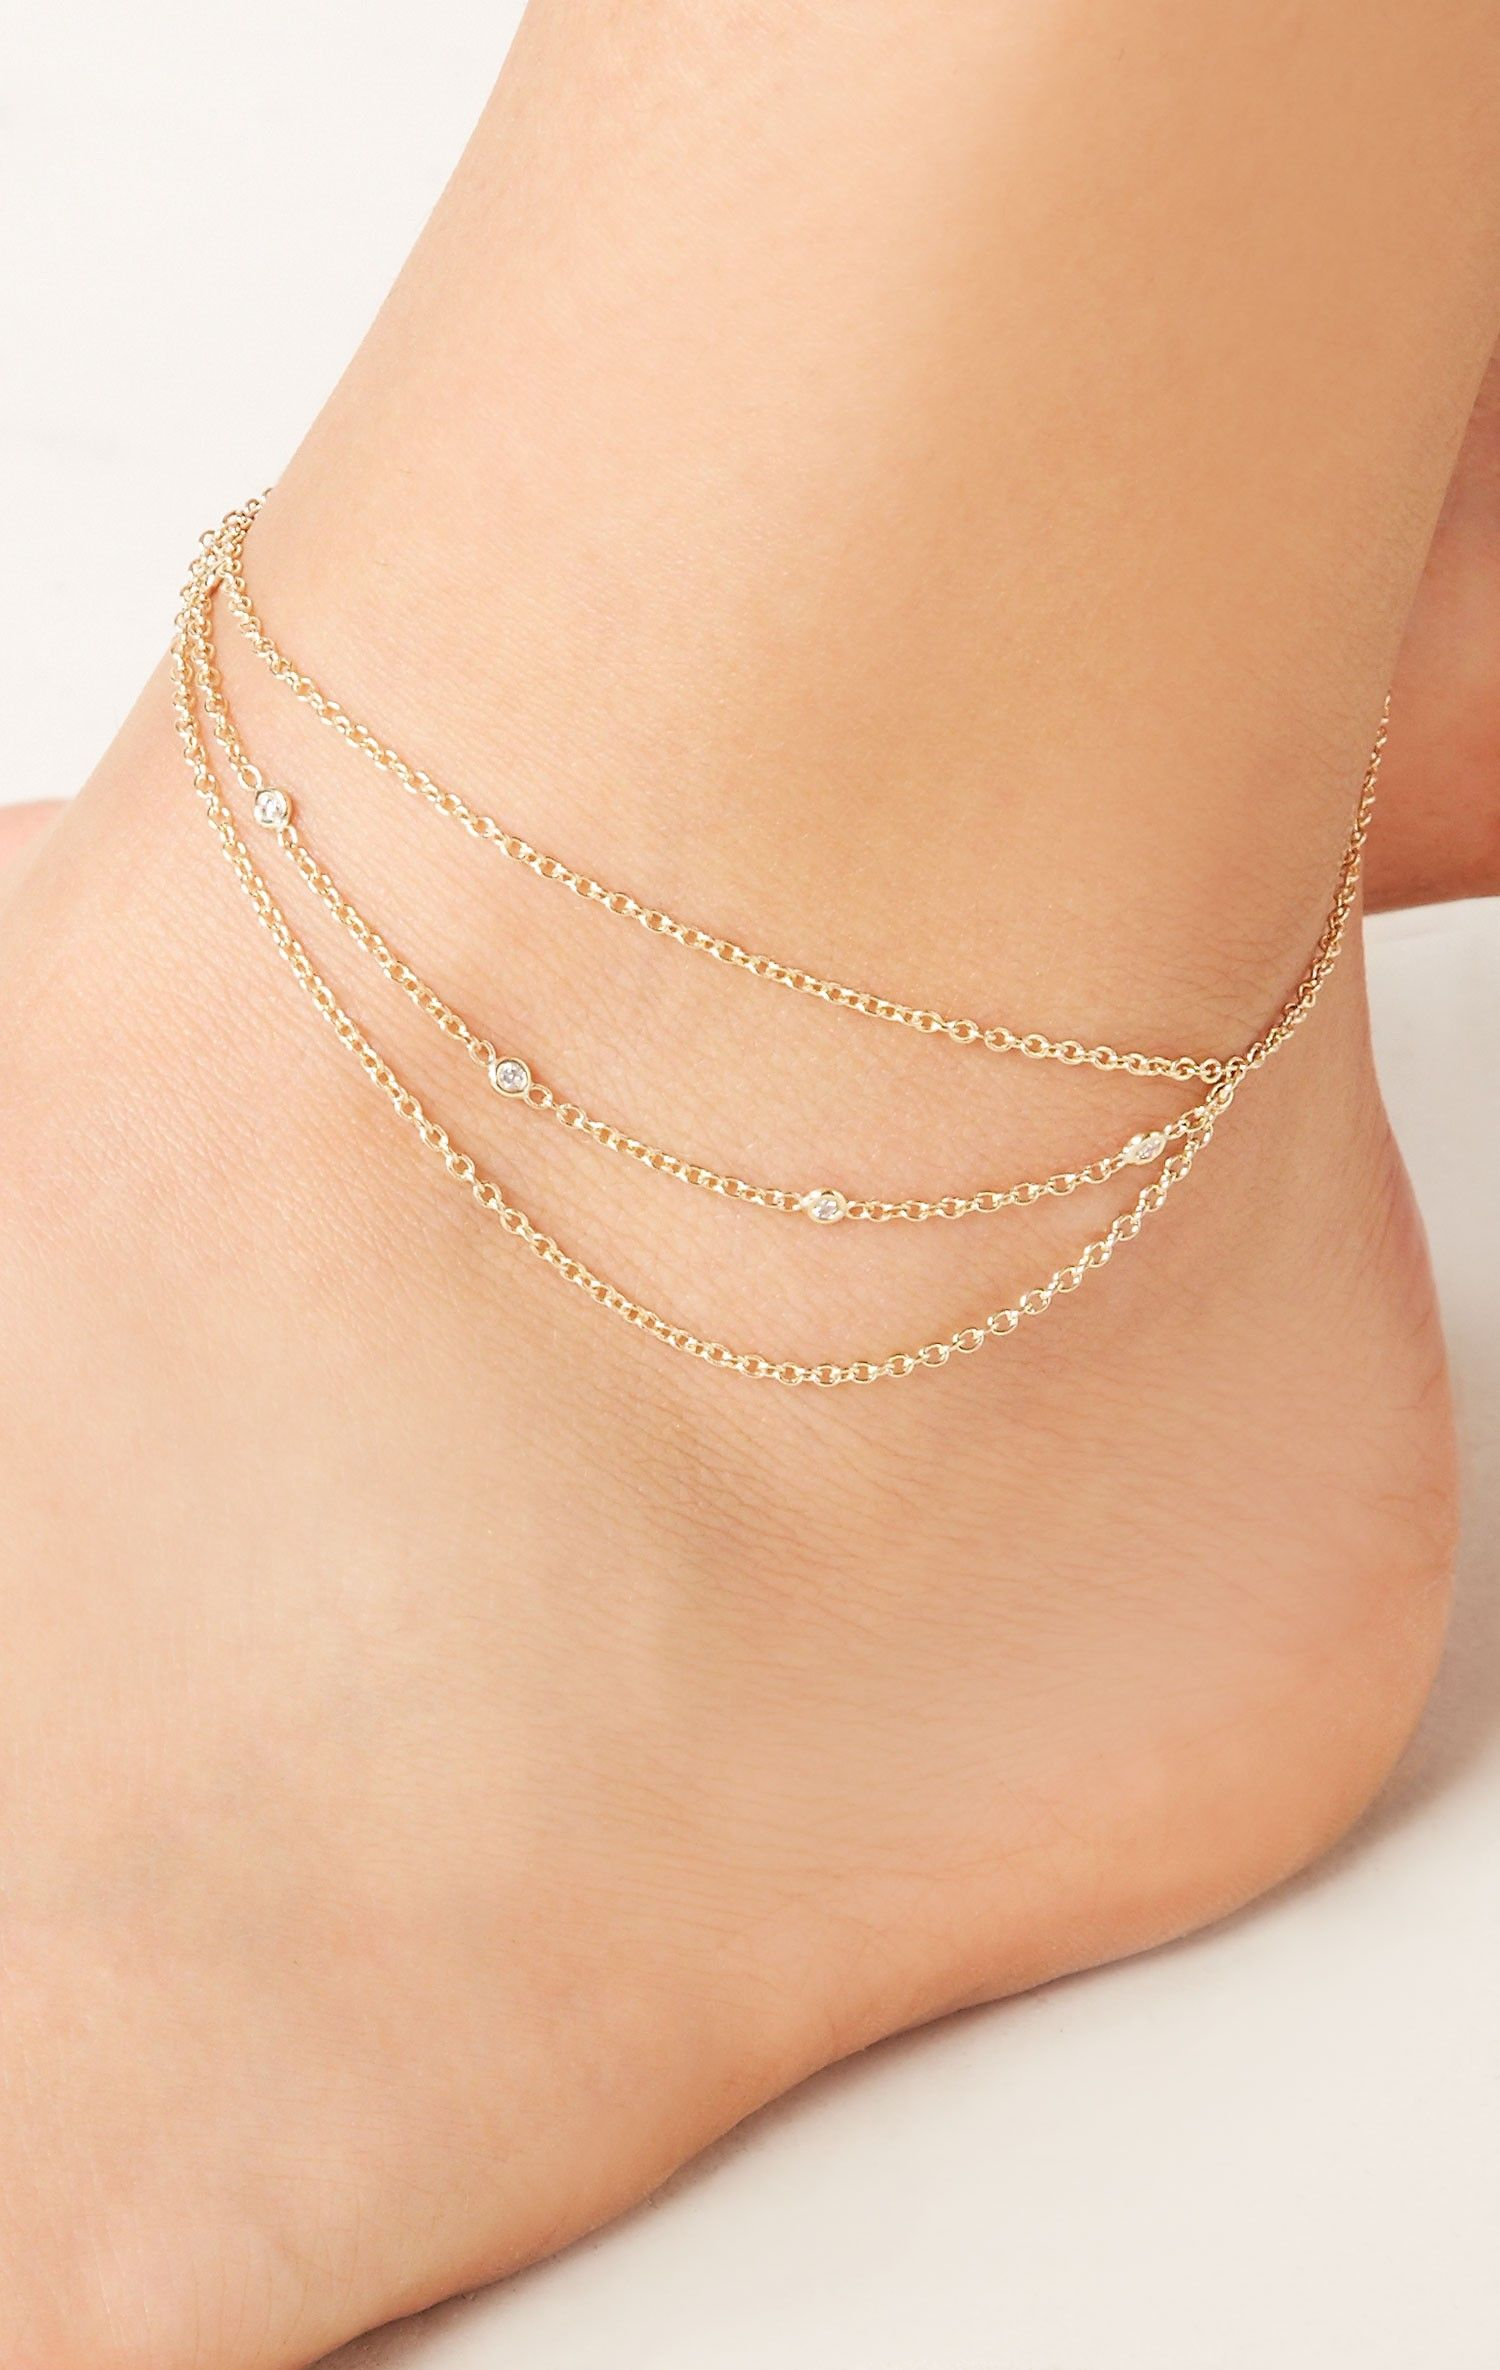 details by jewelry the products for is a vacations flip spent this pa flop silver fashioned anklets anklet link of aeravida relaxing whimsical summertime pool plain reminder perfect sterling times or fine sandal style your